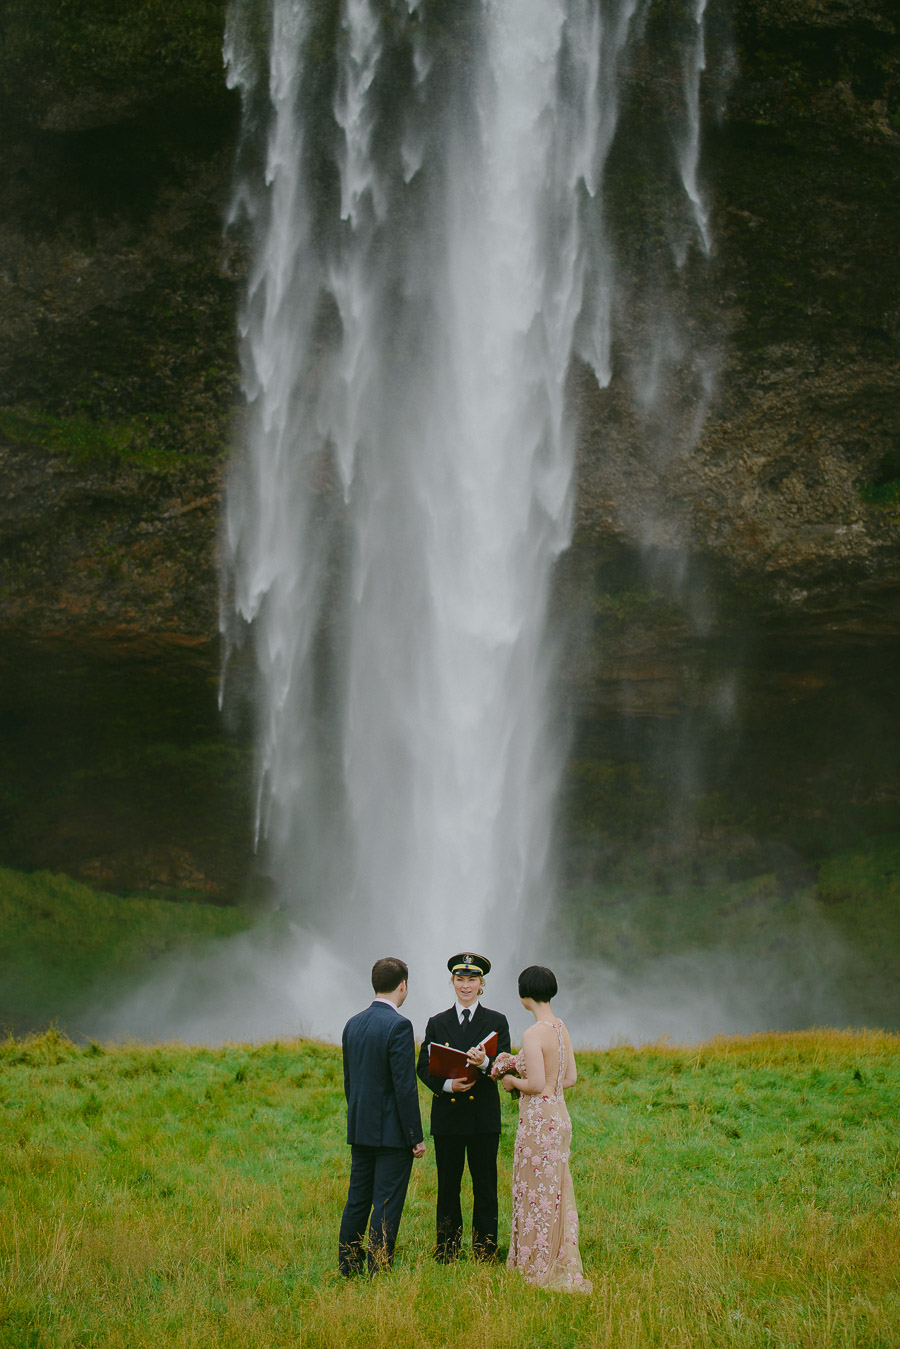 maja_patrick_iceland_wedding_photographer_mait_juriado-016